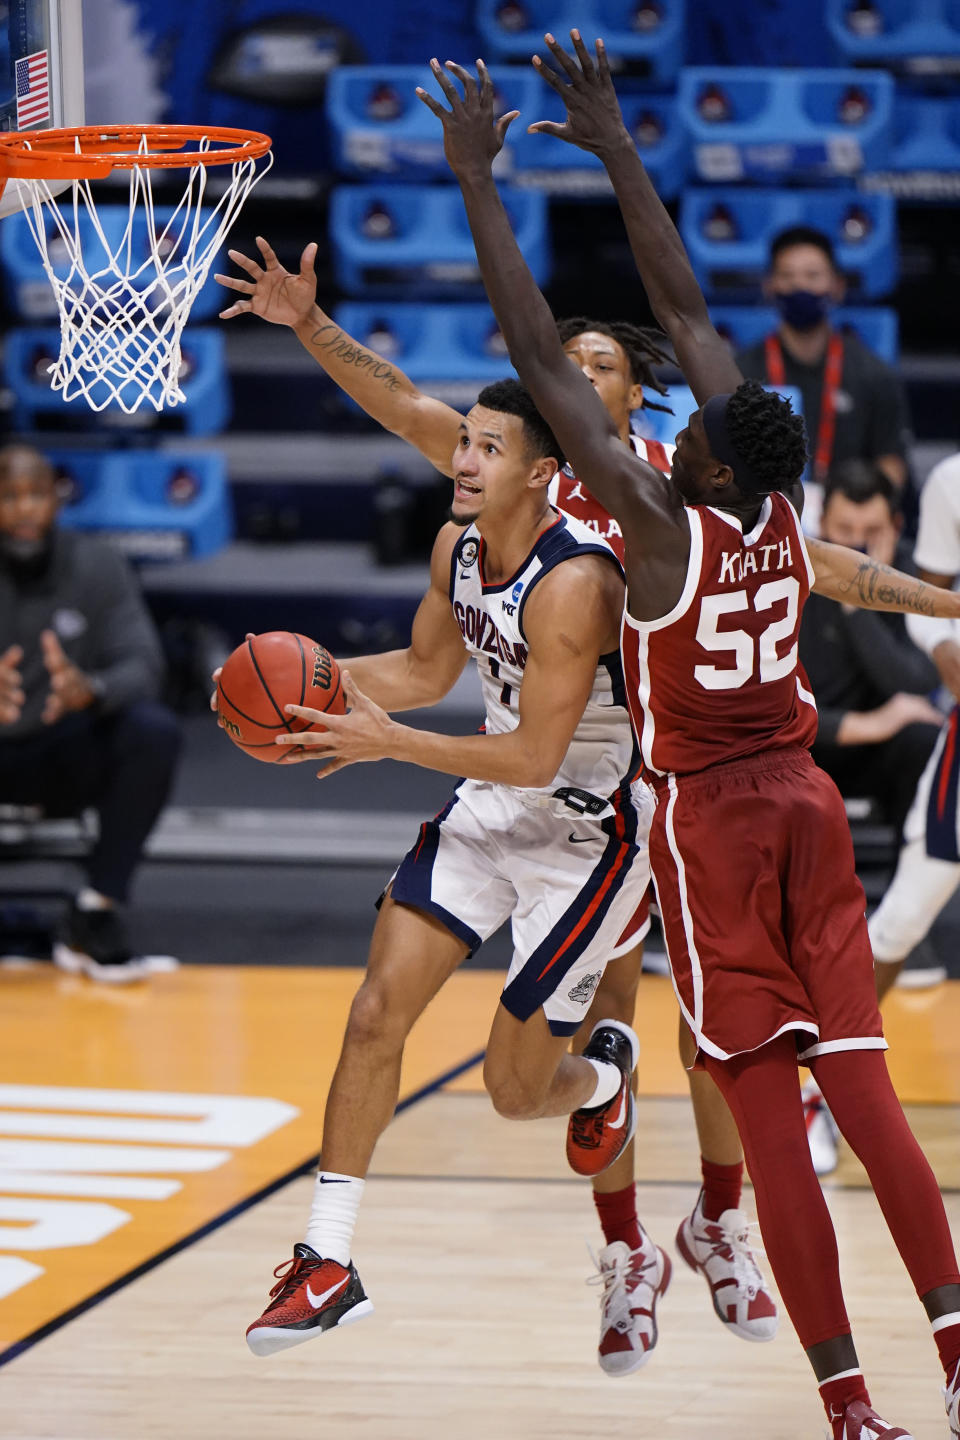 Gonzaga guard Jalen Suggs (1) shoots in front of Oklahoma forward Kur Kuath (52) in the second half of a college basketball game in the second round of the NCAA tournament at Hinkle Fieldhouse in Indianapolis, Monday, March 22, 2021. (AP Photo/AJ Mast)